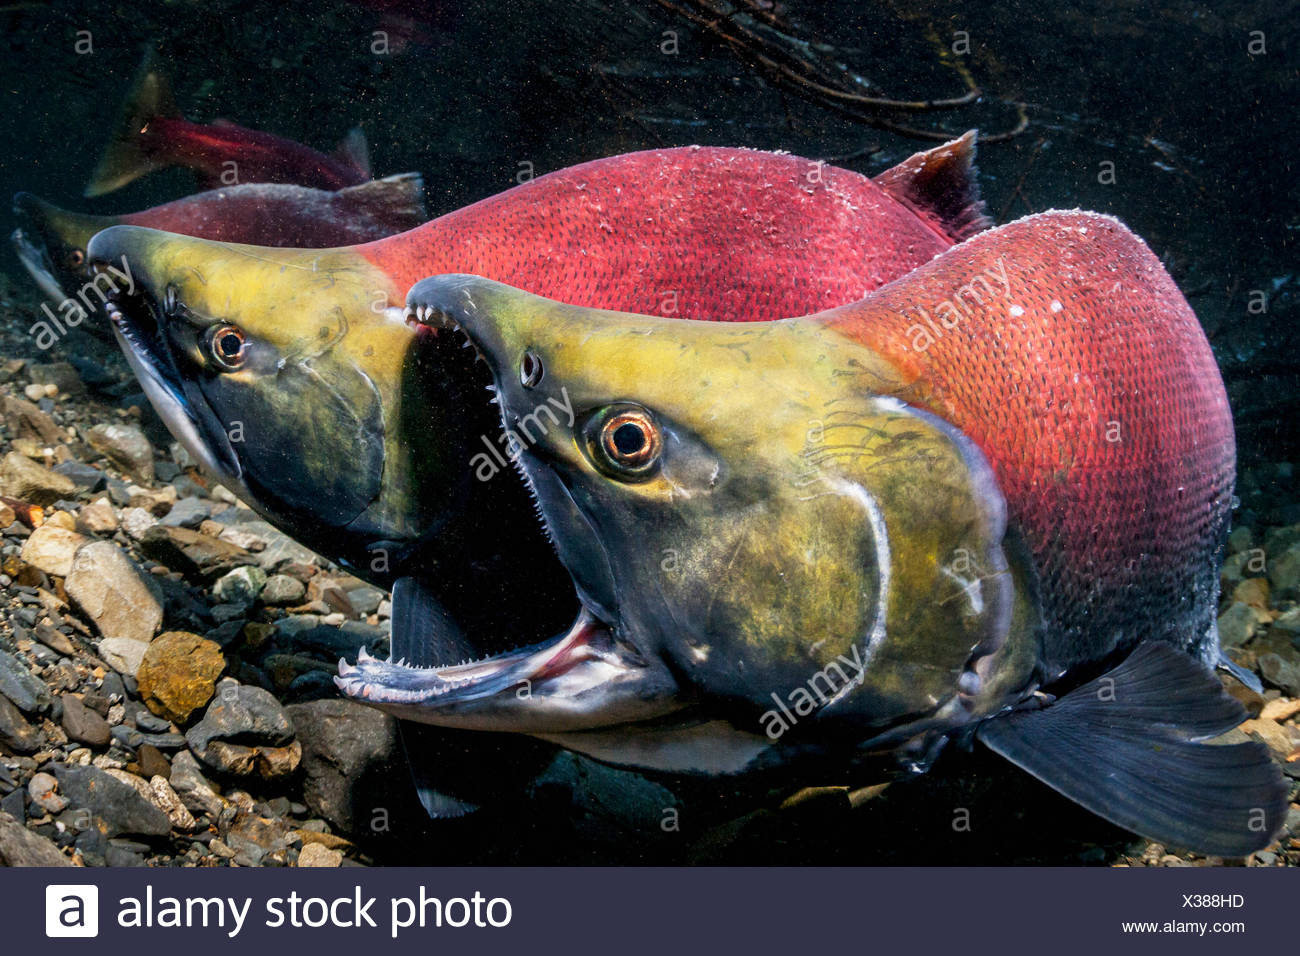 A male Sockeye Salmon (Oncorhynchus nerka) fends off an intruding male with the gape threat in an Alaskan stream during early summer. - Stock Image